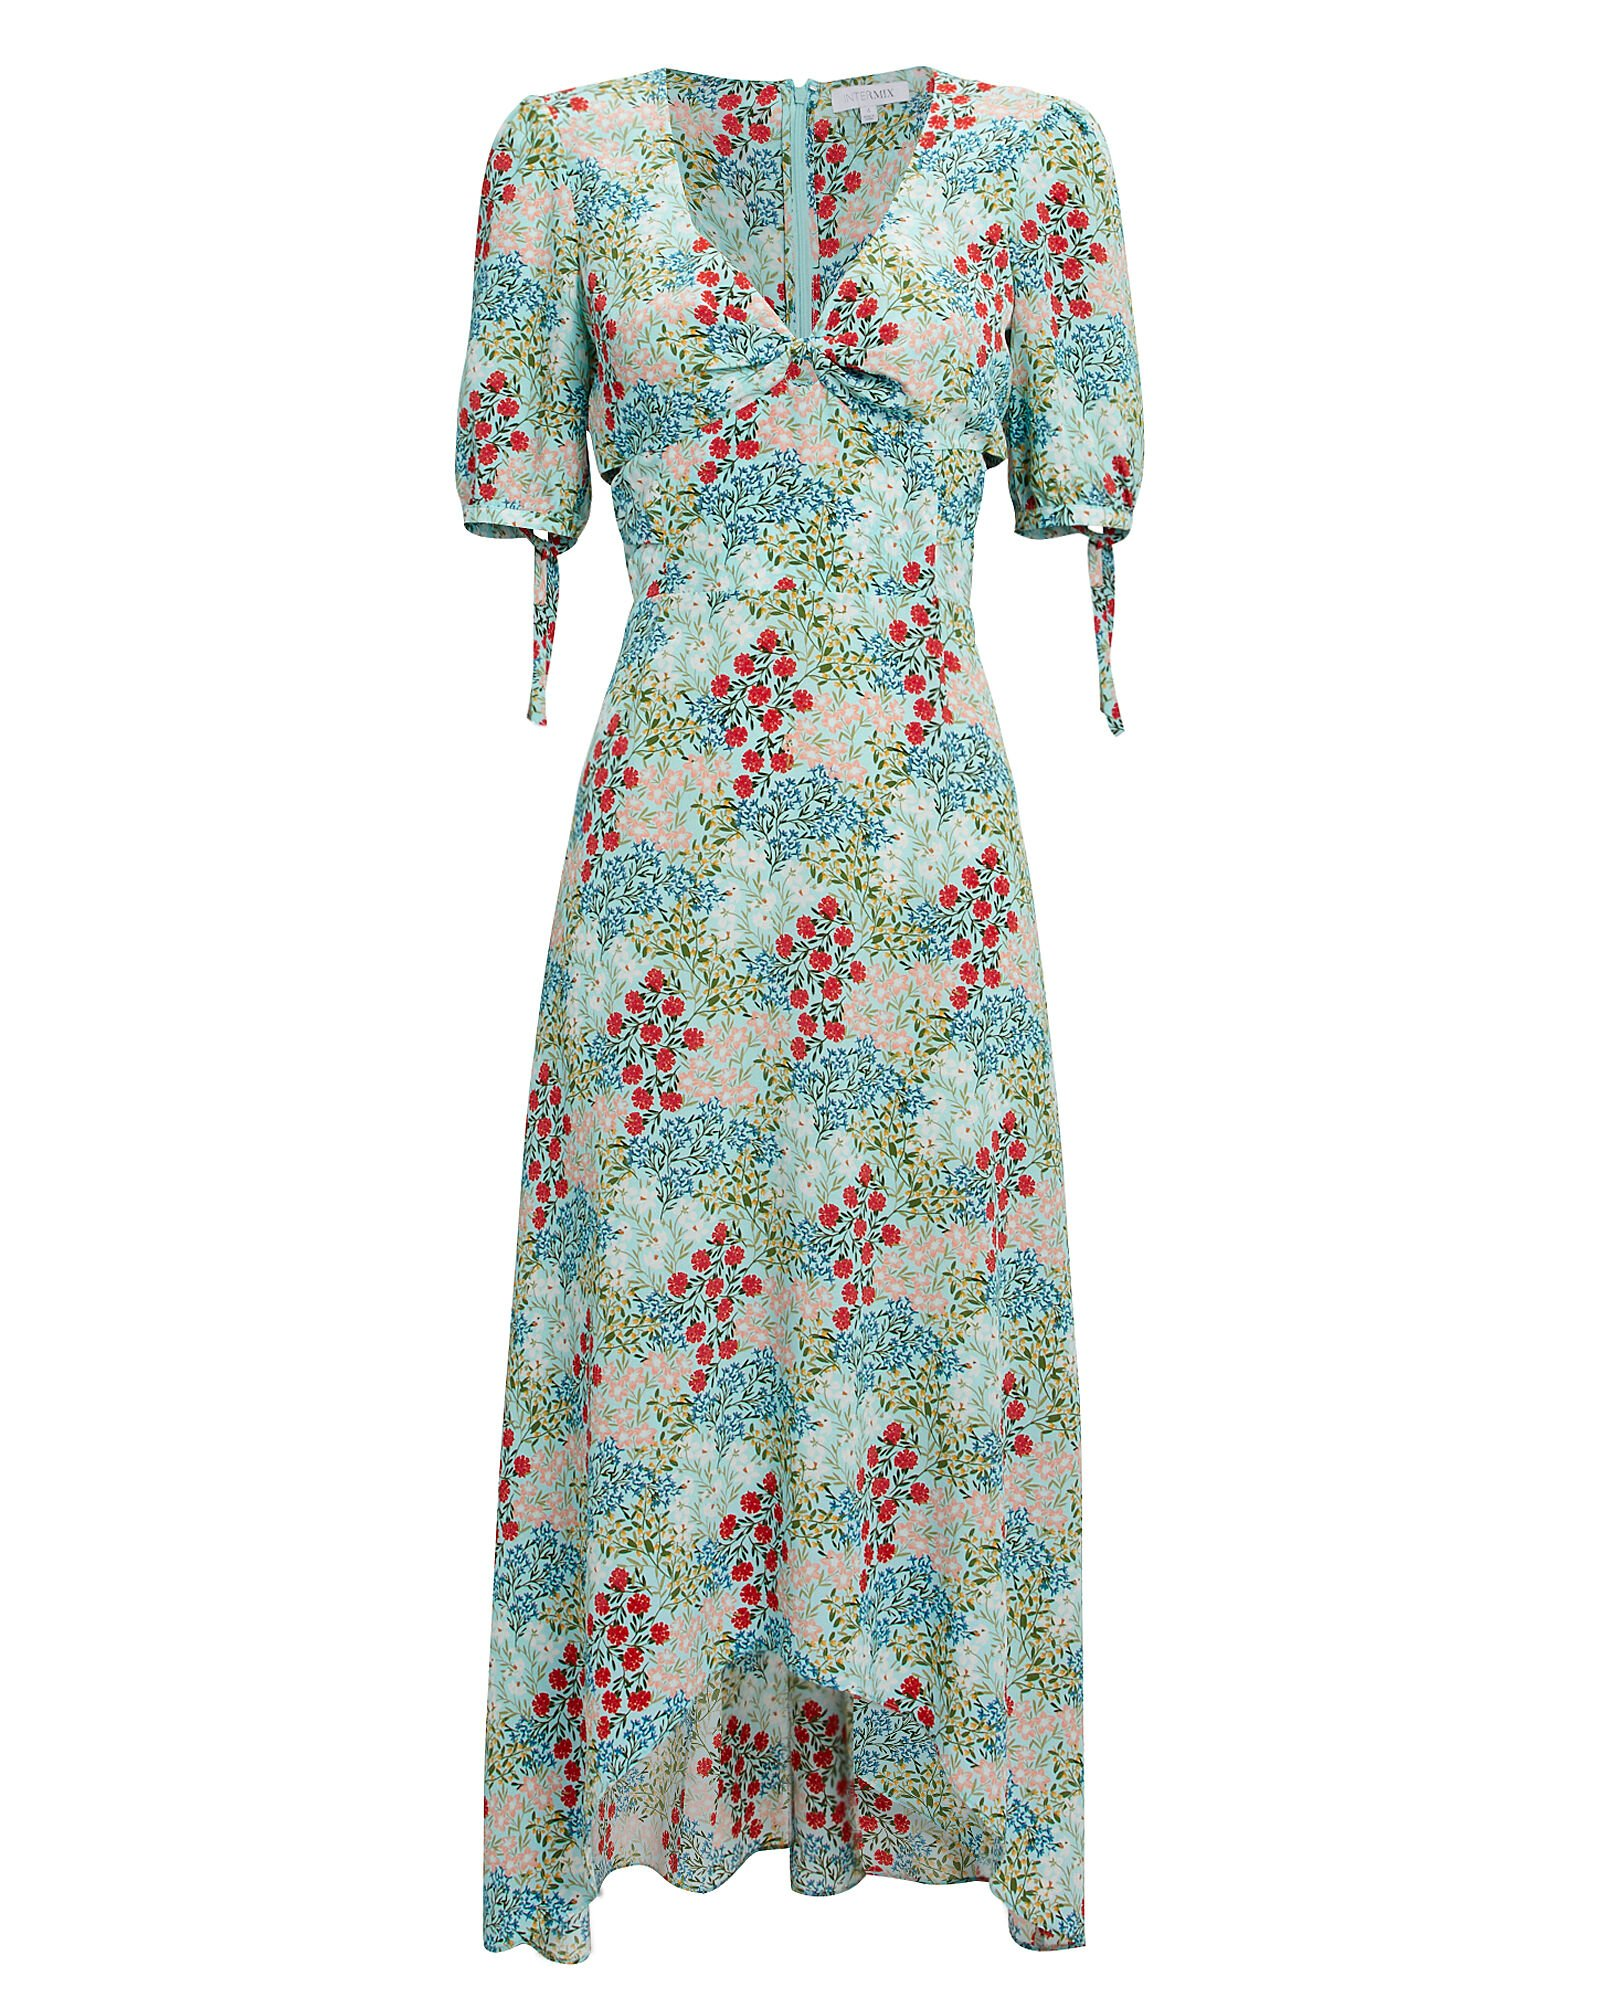 Nessa Silk Floral High-Low Dress, TURQUOISE, hi-res